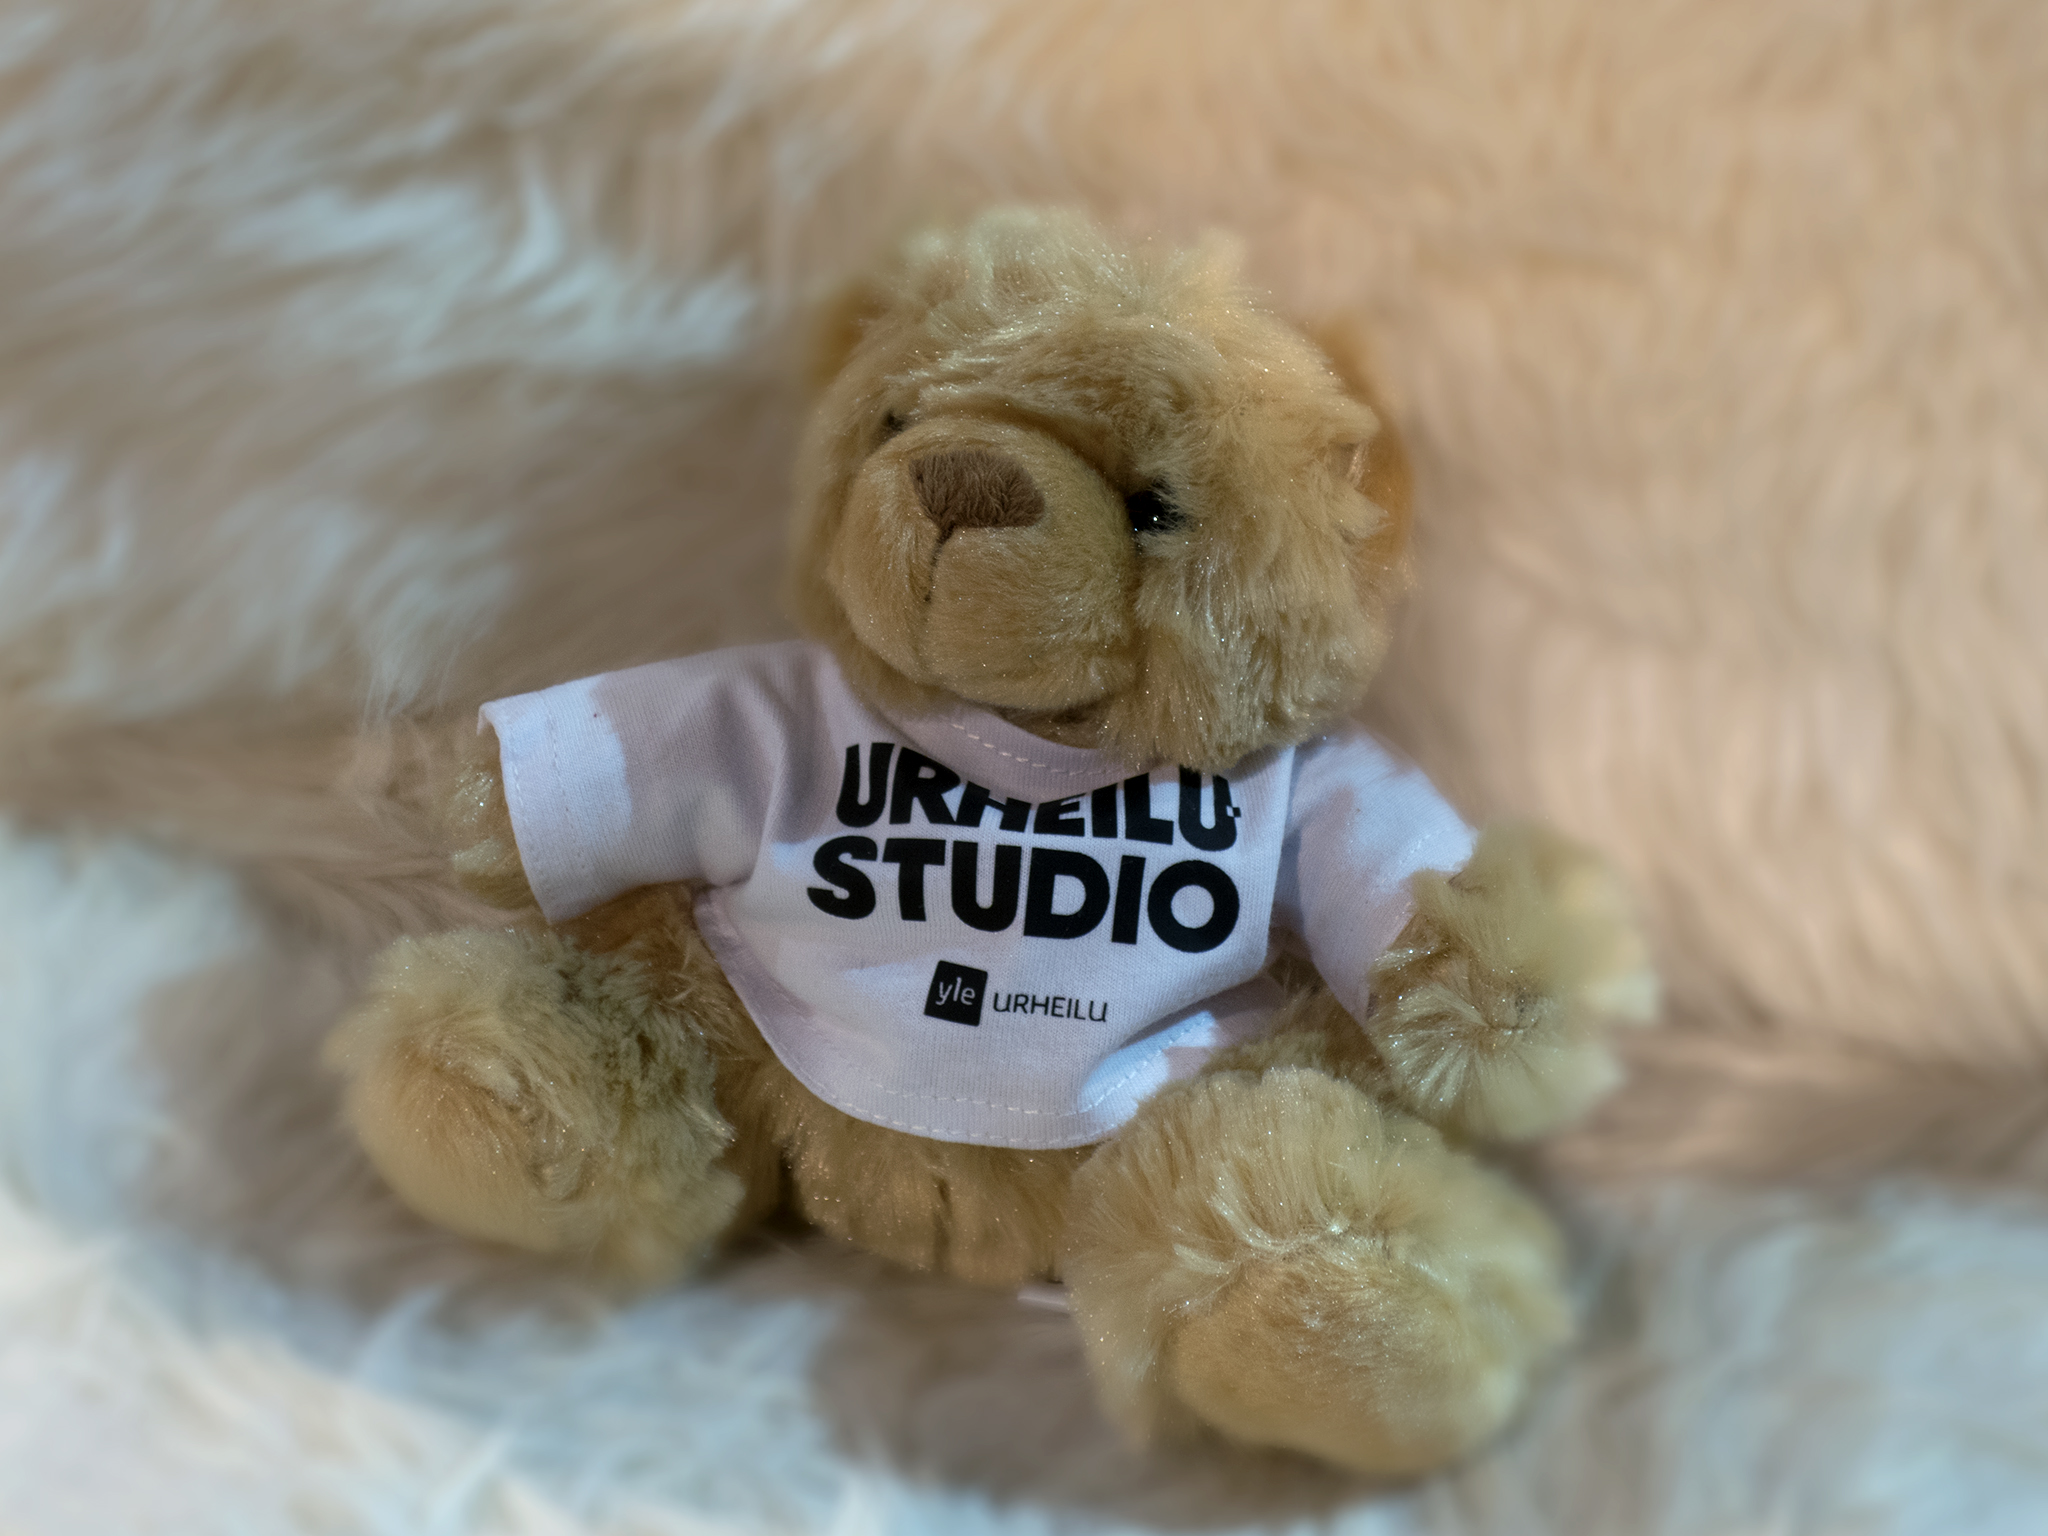 Branding for Yle Urheilustudio. Teddybear is used as prize for the audience contest during the program.